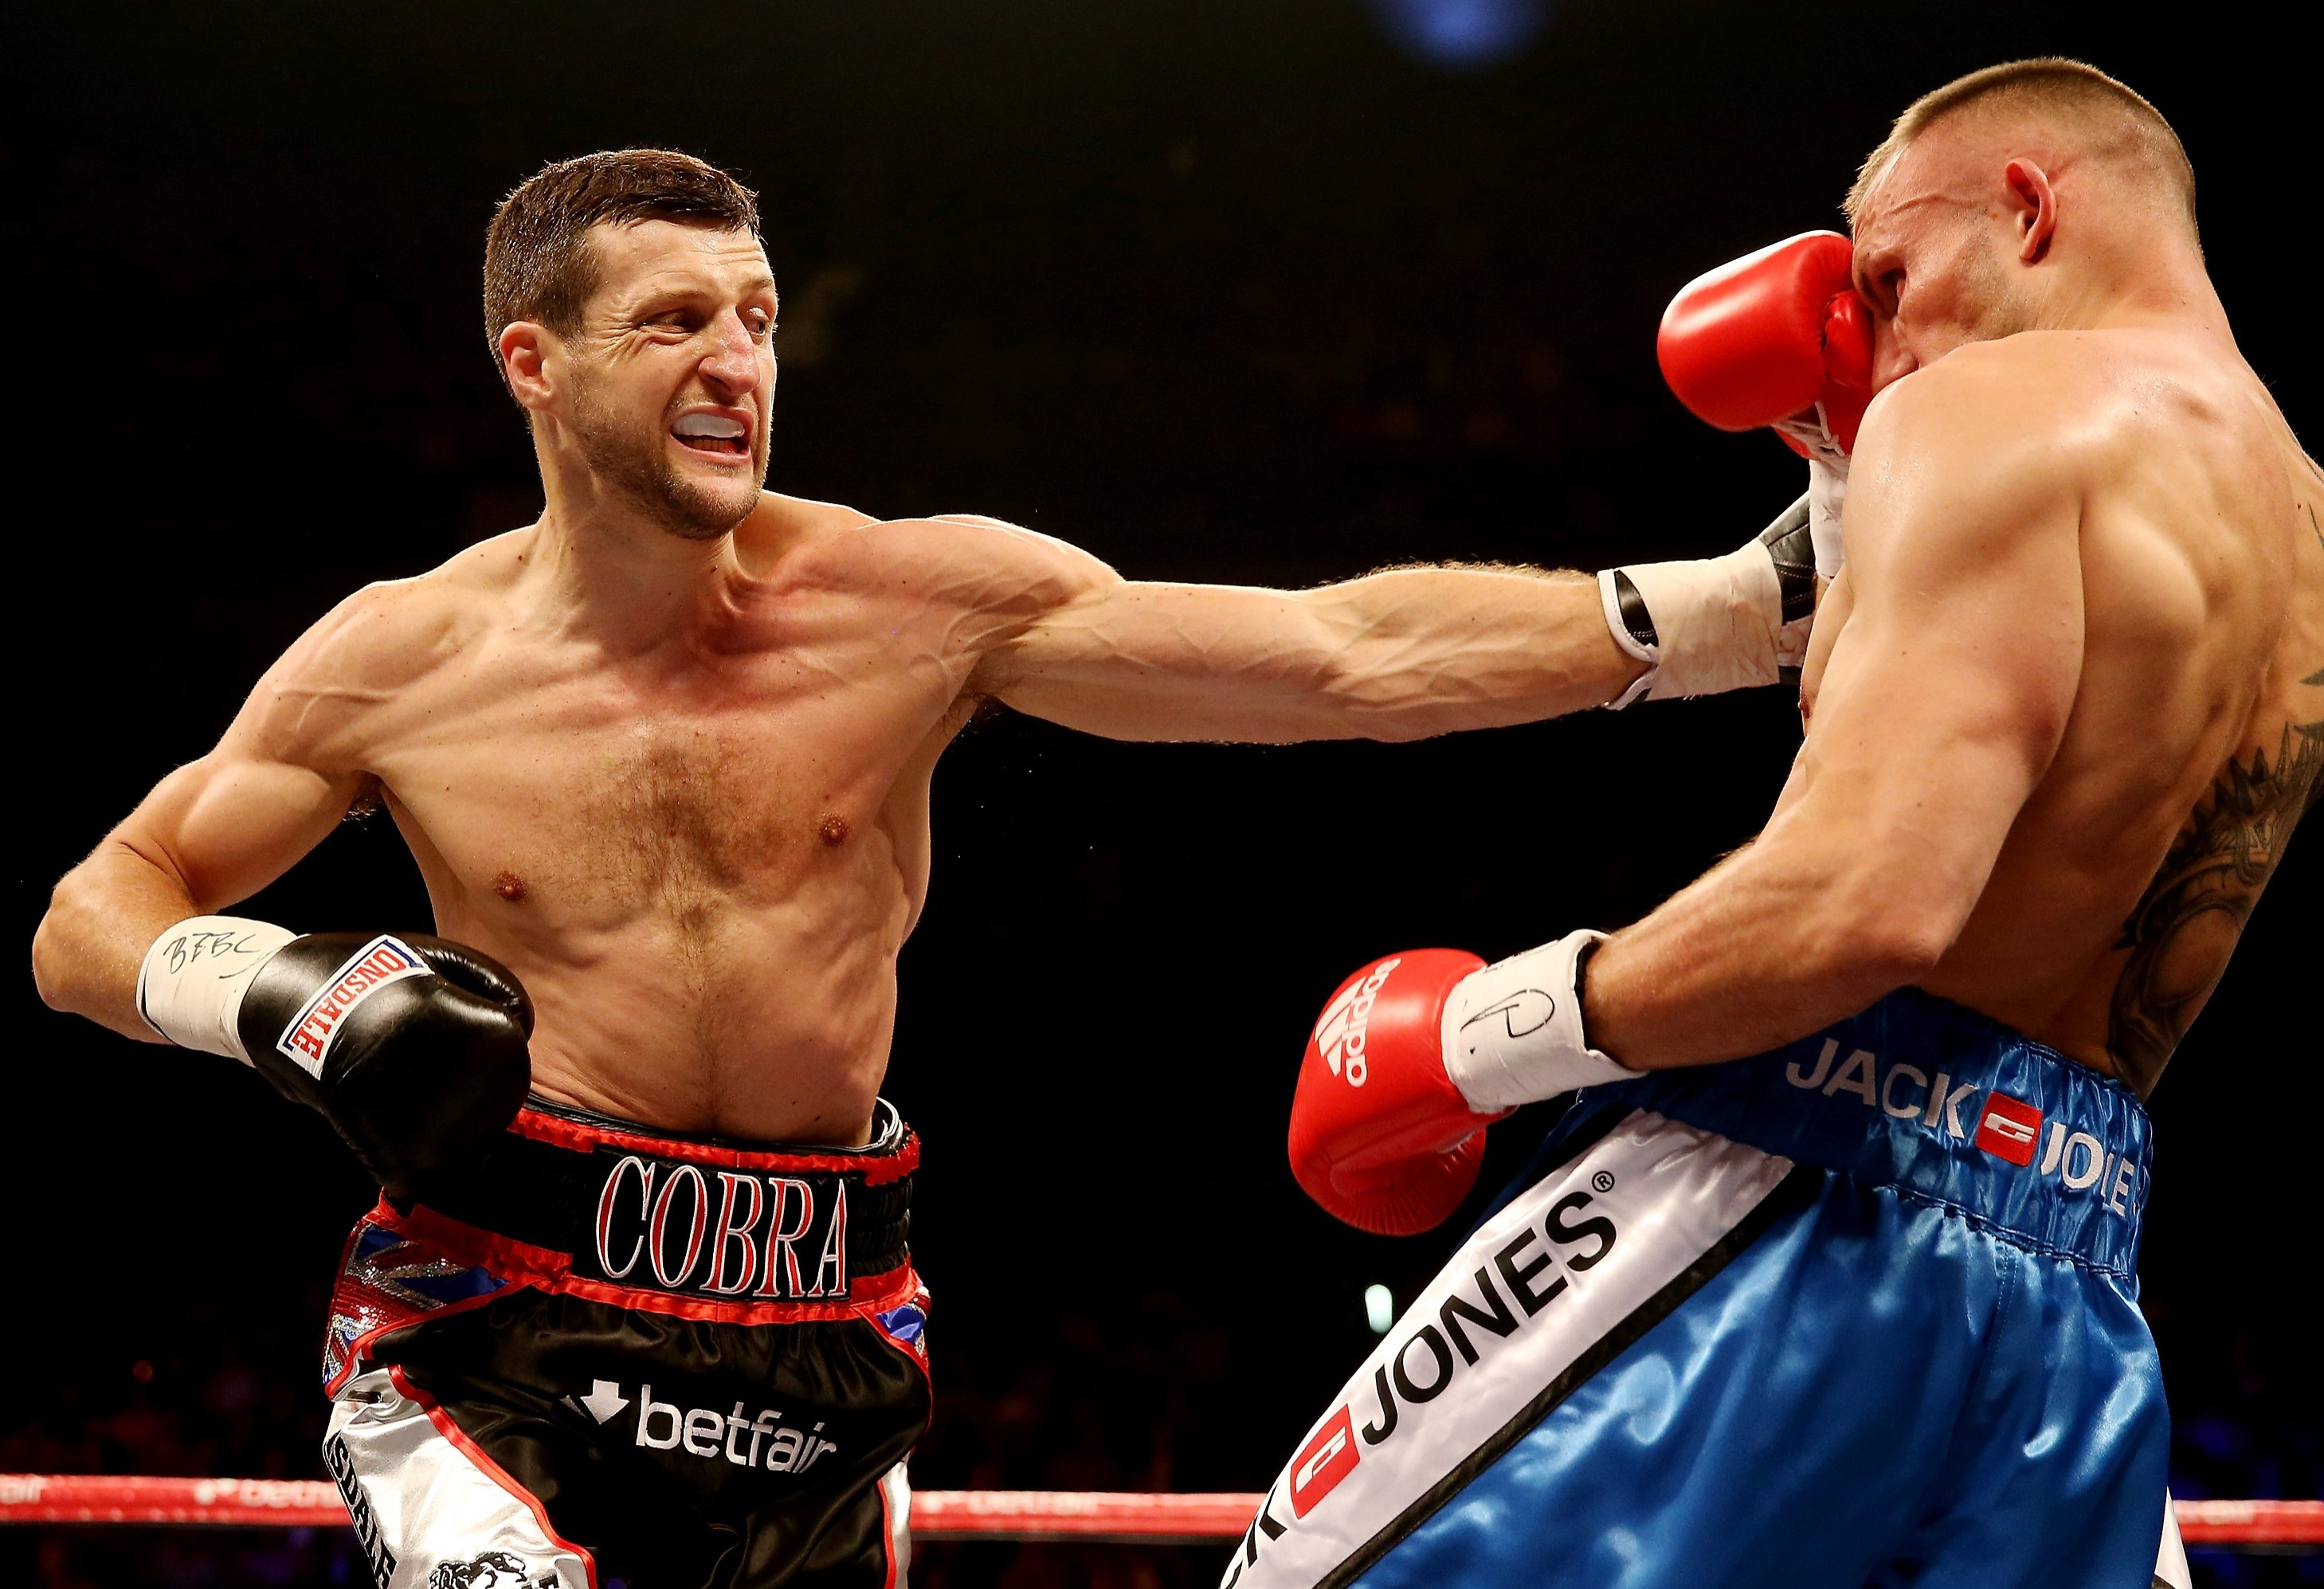 Carl Froch to face Mikkel Kessler for a third time as Andre Ward deal stalls